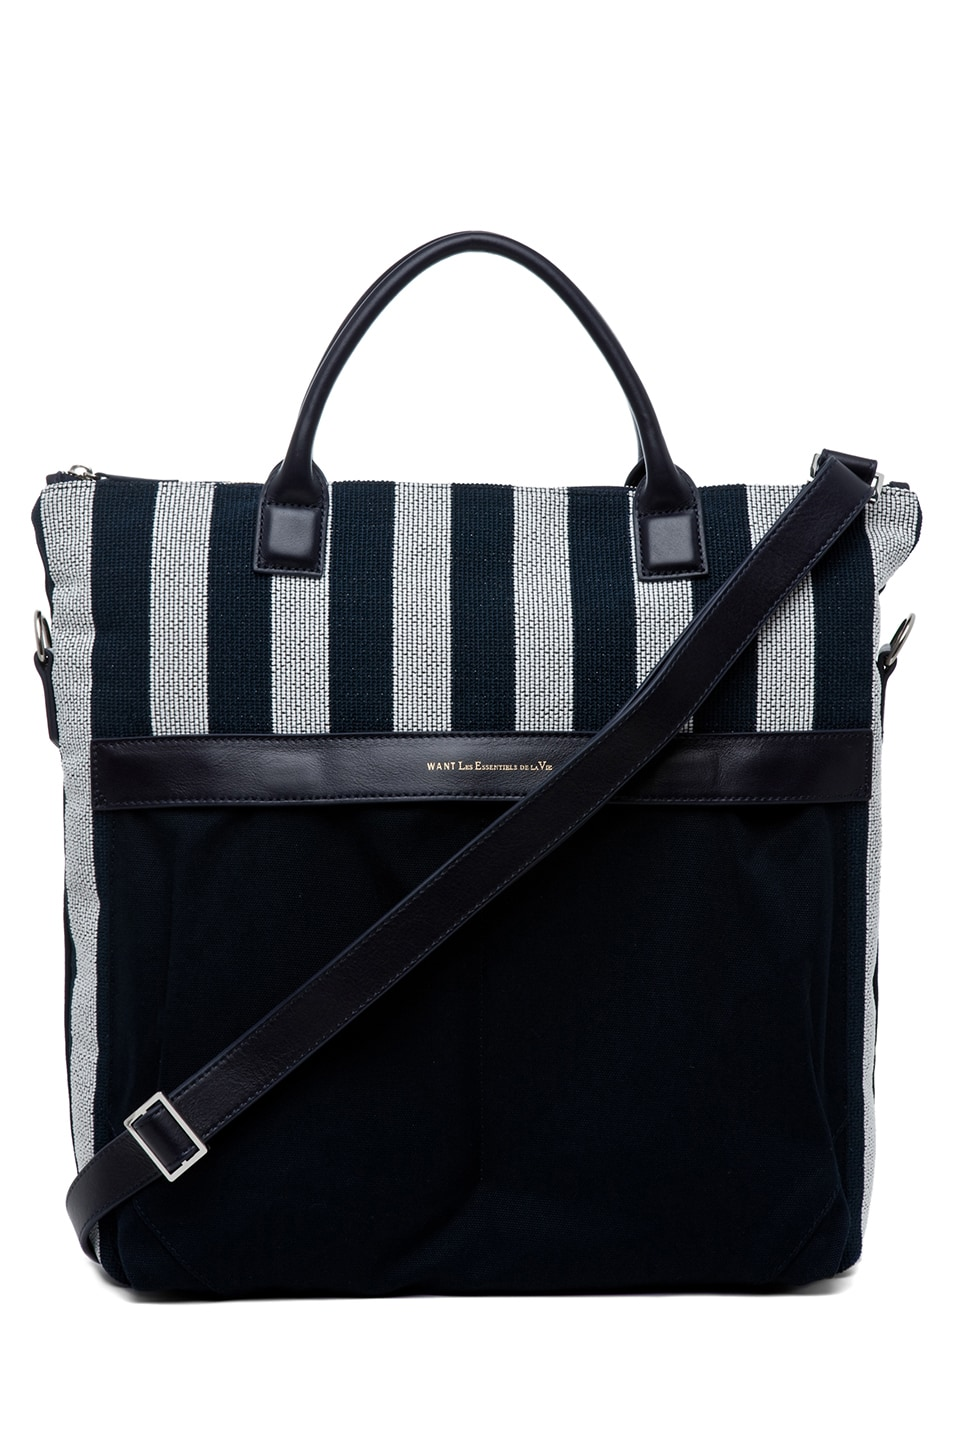 Image 1 of Want Les Essentiels De La Vie O'Hare 2 Shopper Tote in Navy Frise